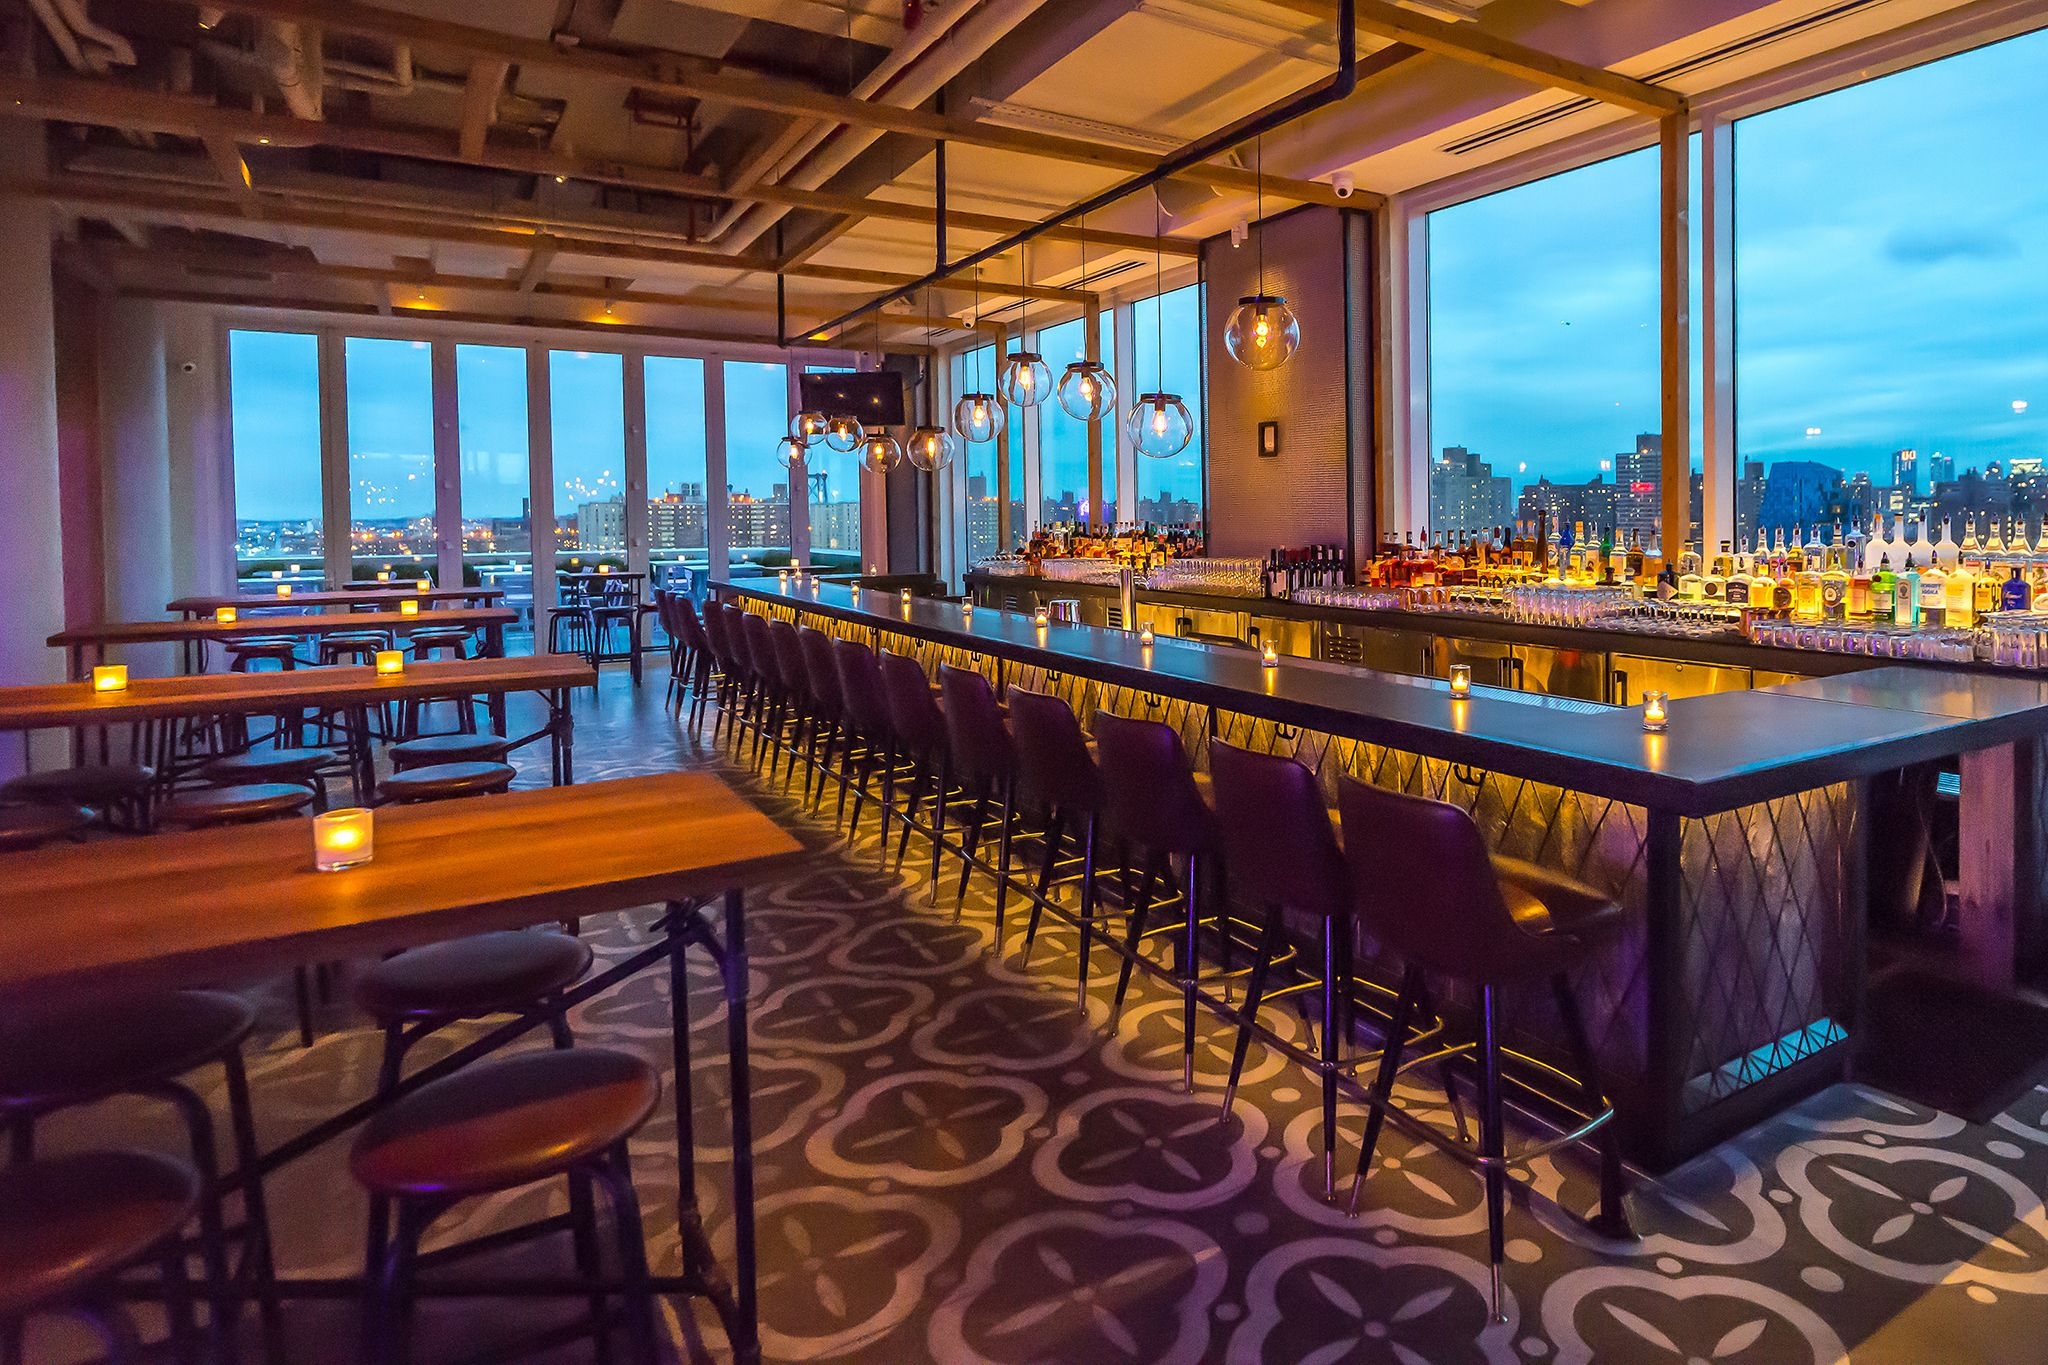 Glorious Views And Delicious Food All At The Same Time Here S Our Essential Guide To Dining Outdoors With Best Rooftop Restaurants Nyc Has Offer